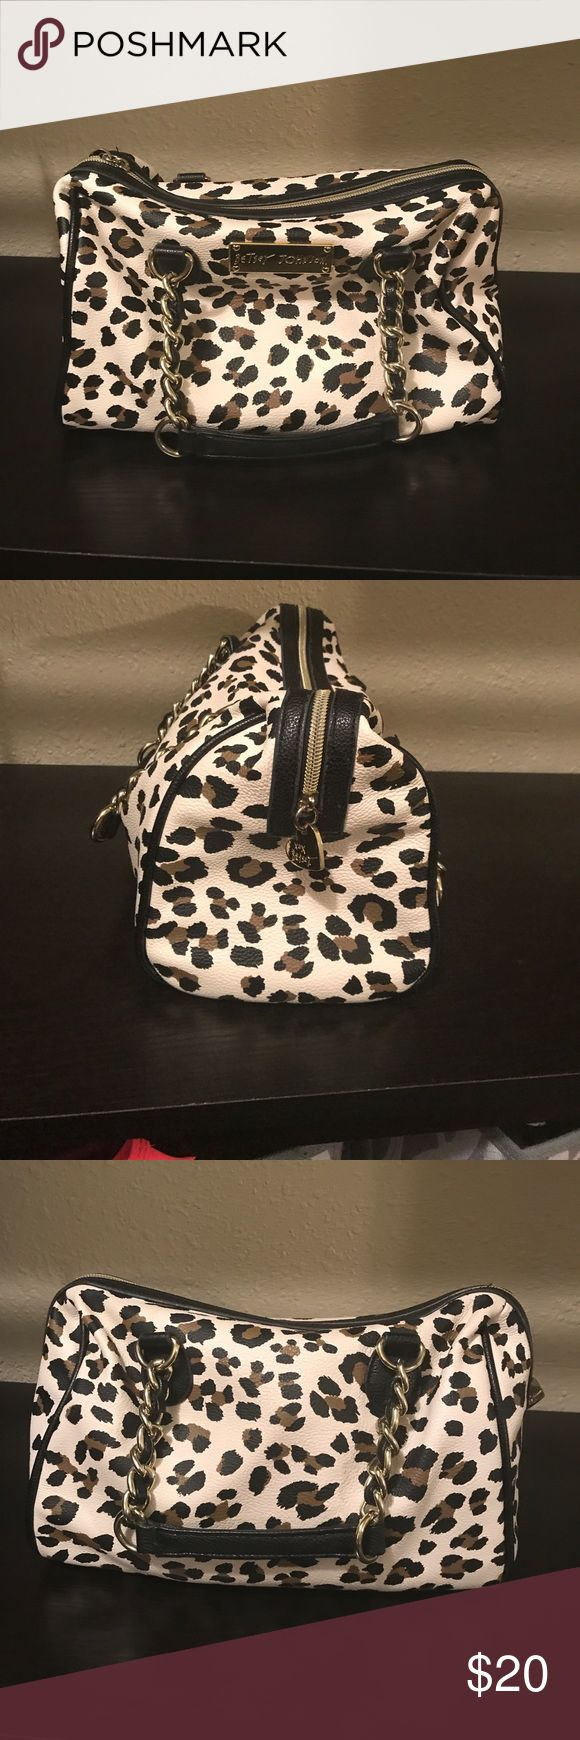 Betsey Johnson leopard purse Super cute! About 13 inches long, 7 inches tall. Betsey Johnson Bags Mini Bags